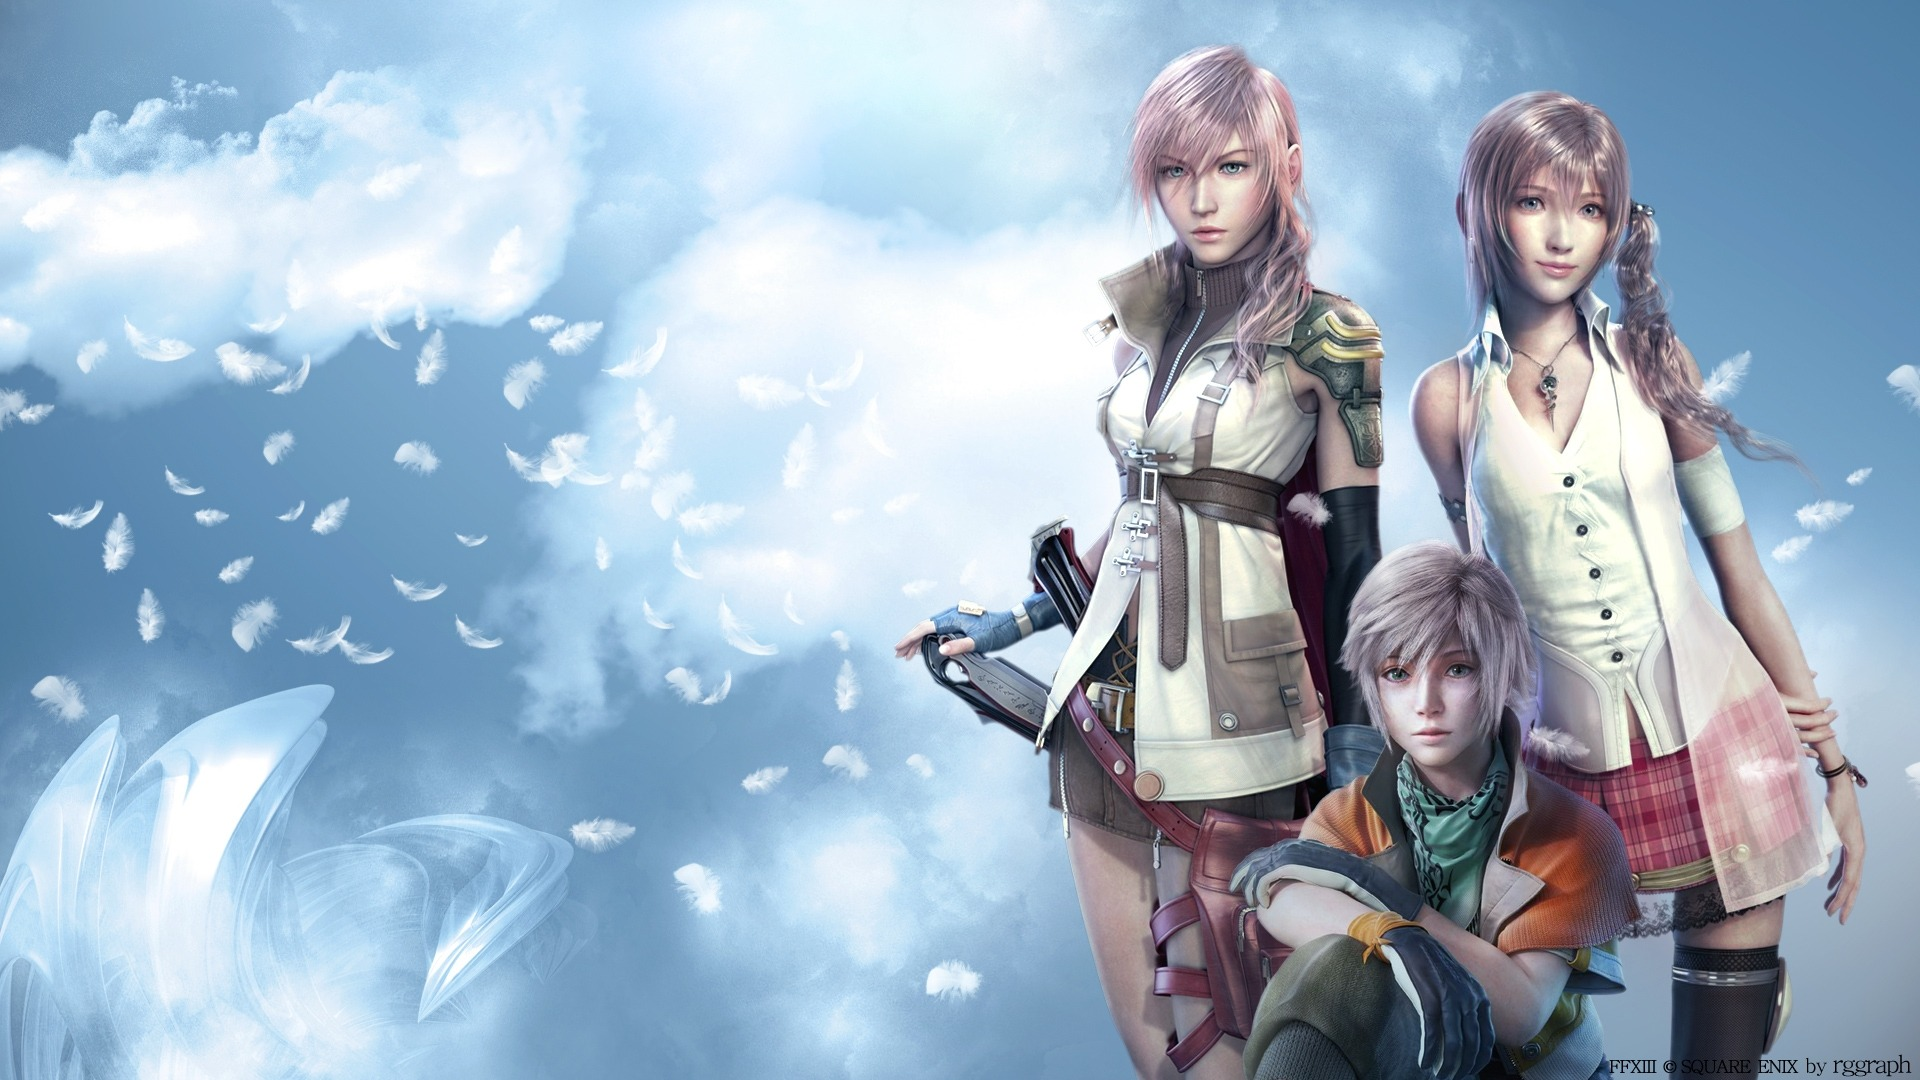 Download Final Fantasy Xiii Classic Game Wallpaper 1920x1080 Full HD 1920x1080